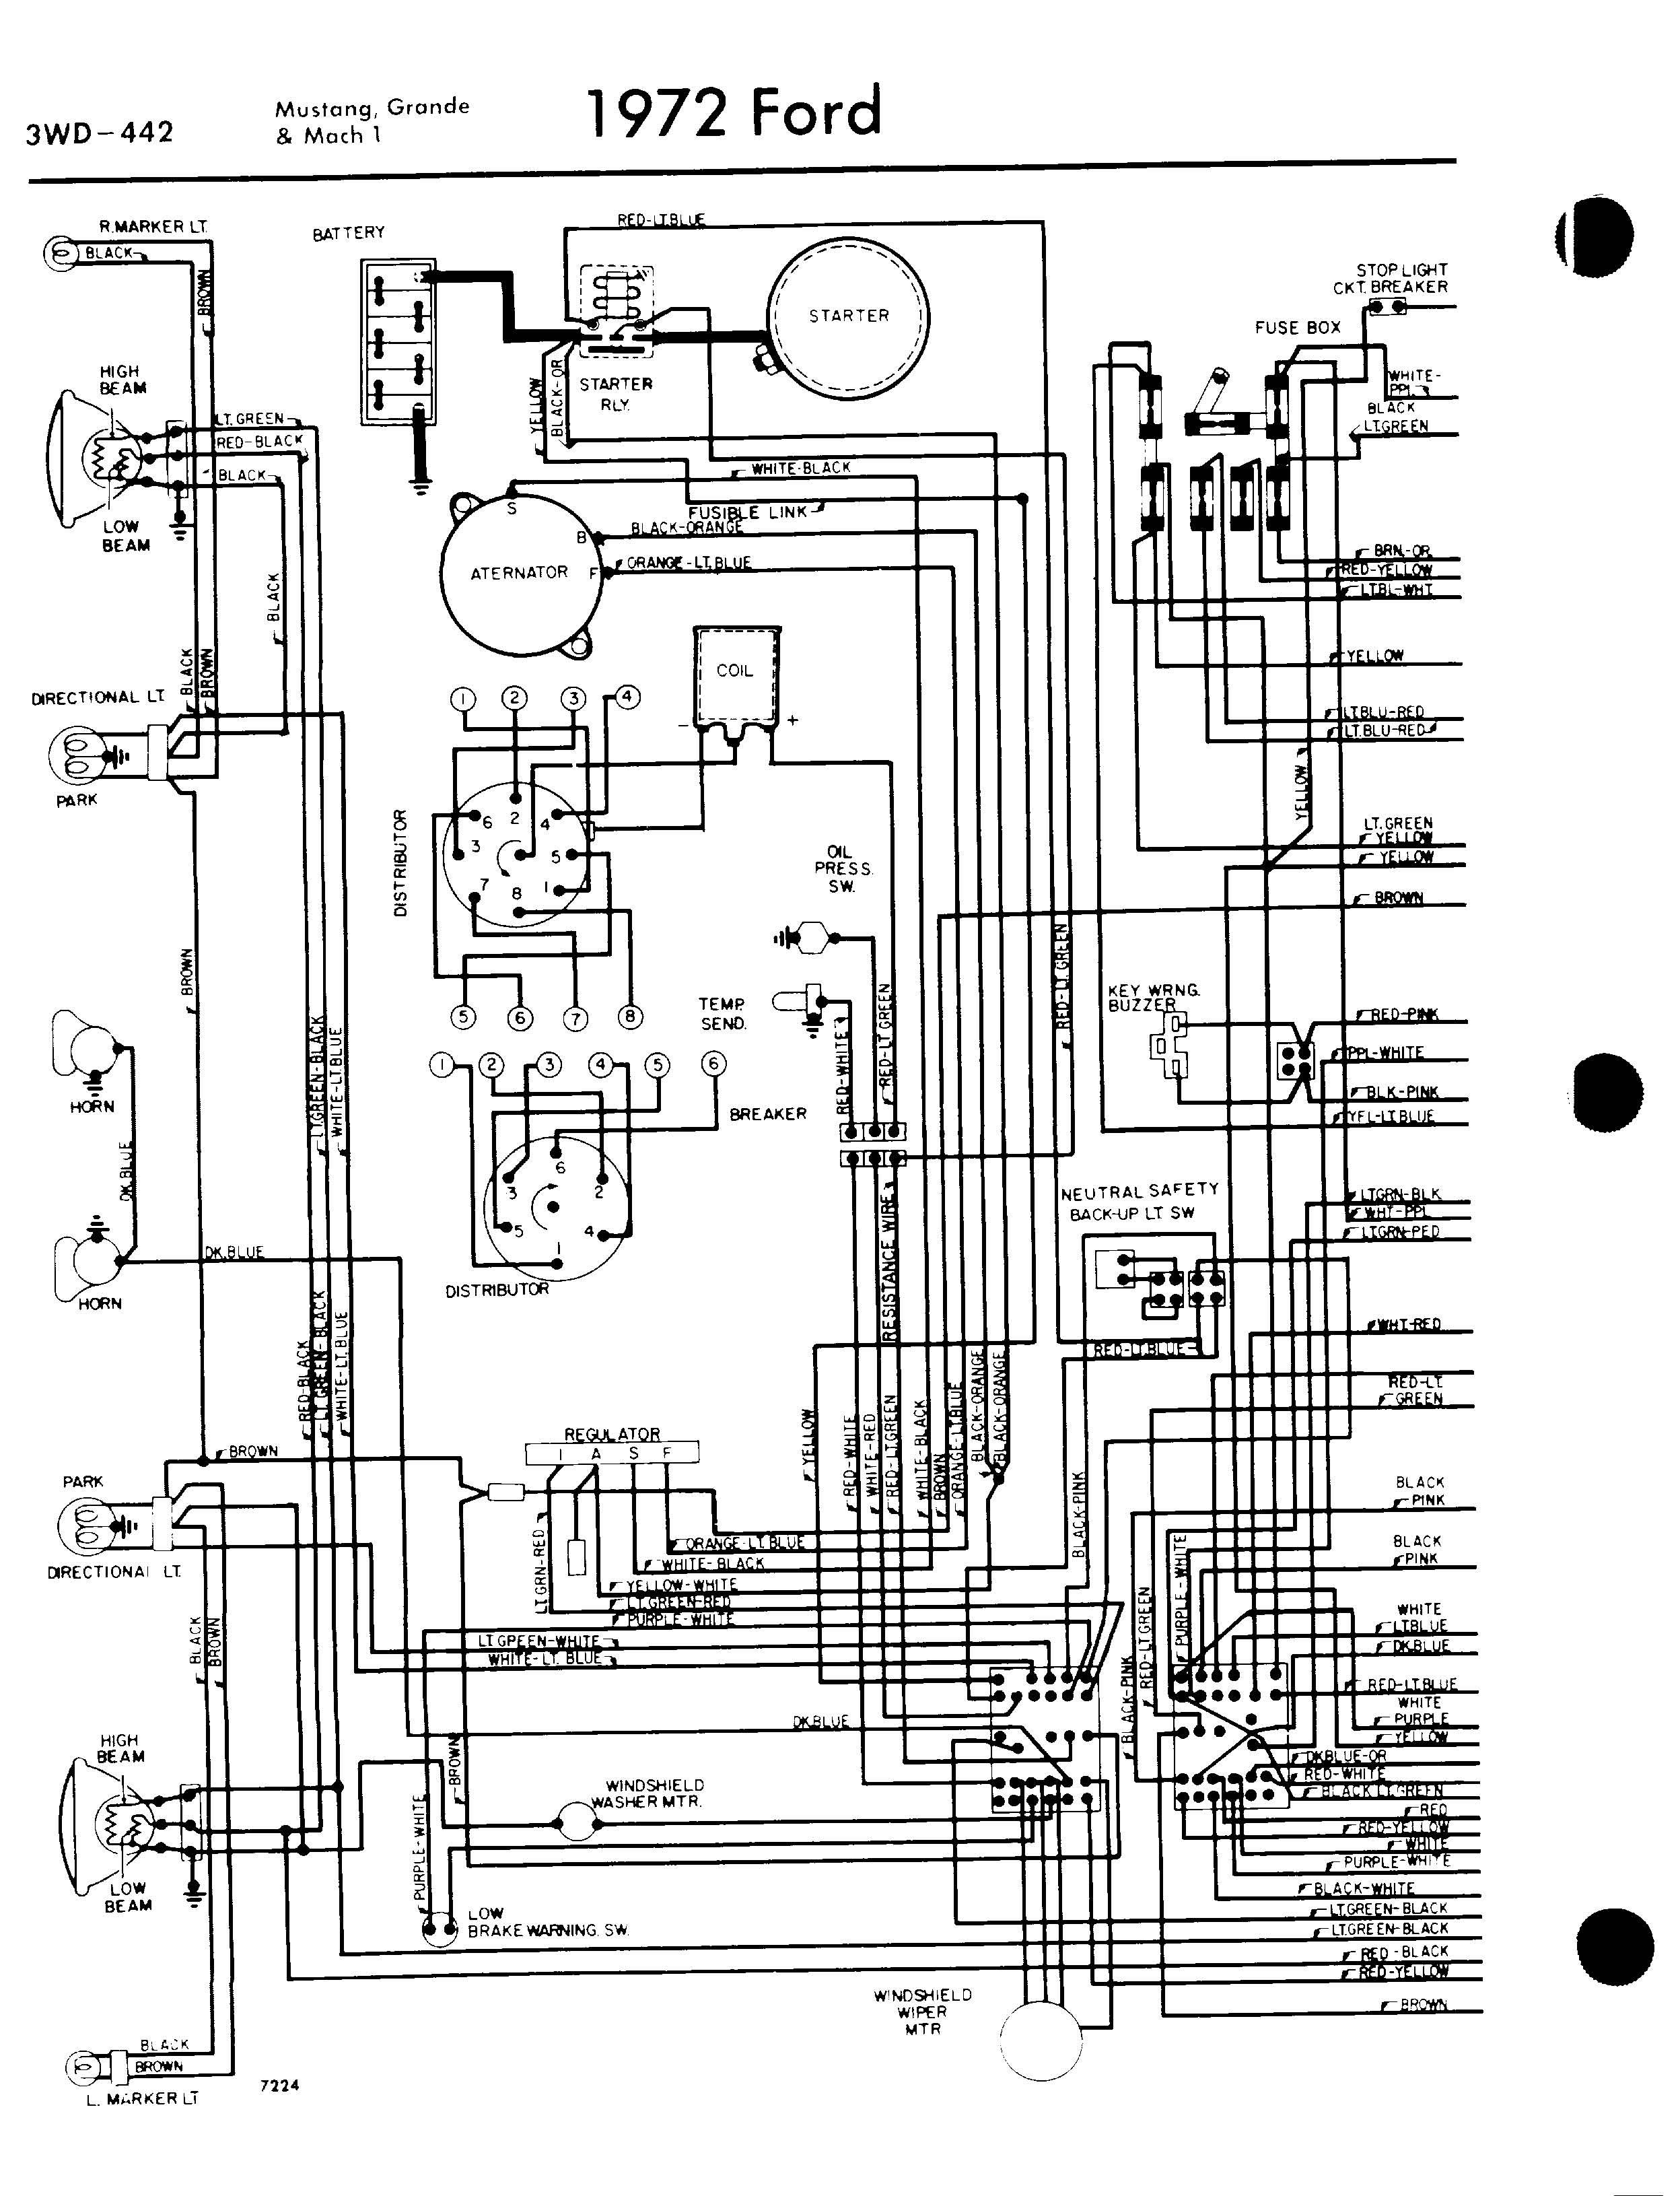 70 Mustang Wiring Harness - Wiring Diagrams Hubs on mustang electrical diagram, 65 mustang diagram, mustang fuel line diagram, mustang solenoid wiring diagram, mustang electrical harness, mustang rear caliper diagram, 2006 mustang shaker 500 wiring diagram, 1966 ford truck alternator diagram, mustang vacuum line diagram, mustang frame diagram, mustang ignition diagram, 1993 ford mustang vacuum diagram, 1988 mustang wiring diagram, mustang fuel system diagram, mustang rear brake assembly diagram, 1992 ford mustang diagram, mustang front end diagram, 1987 mustang wiring diagram, 1970 mustang instrument cluster diagram, 90 mustang wiring diagram,